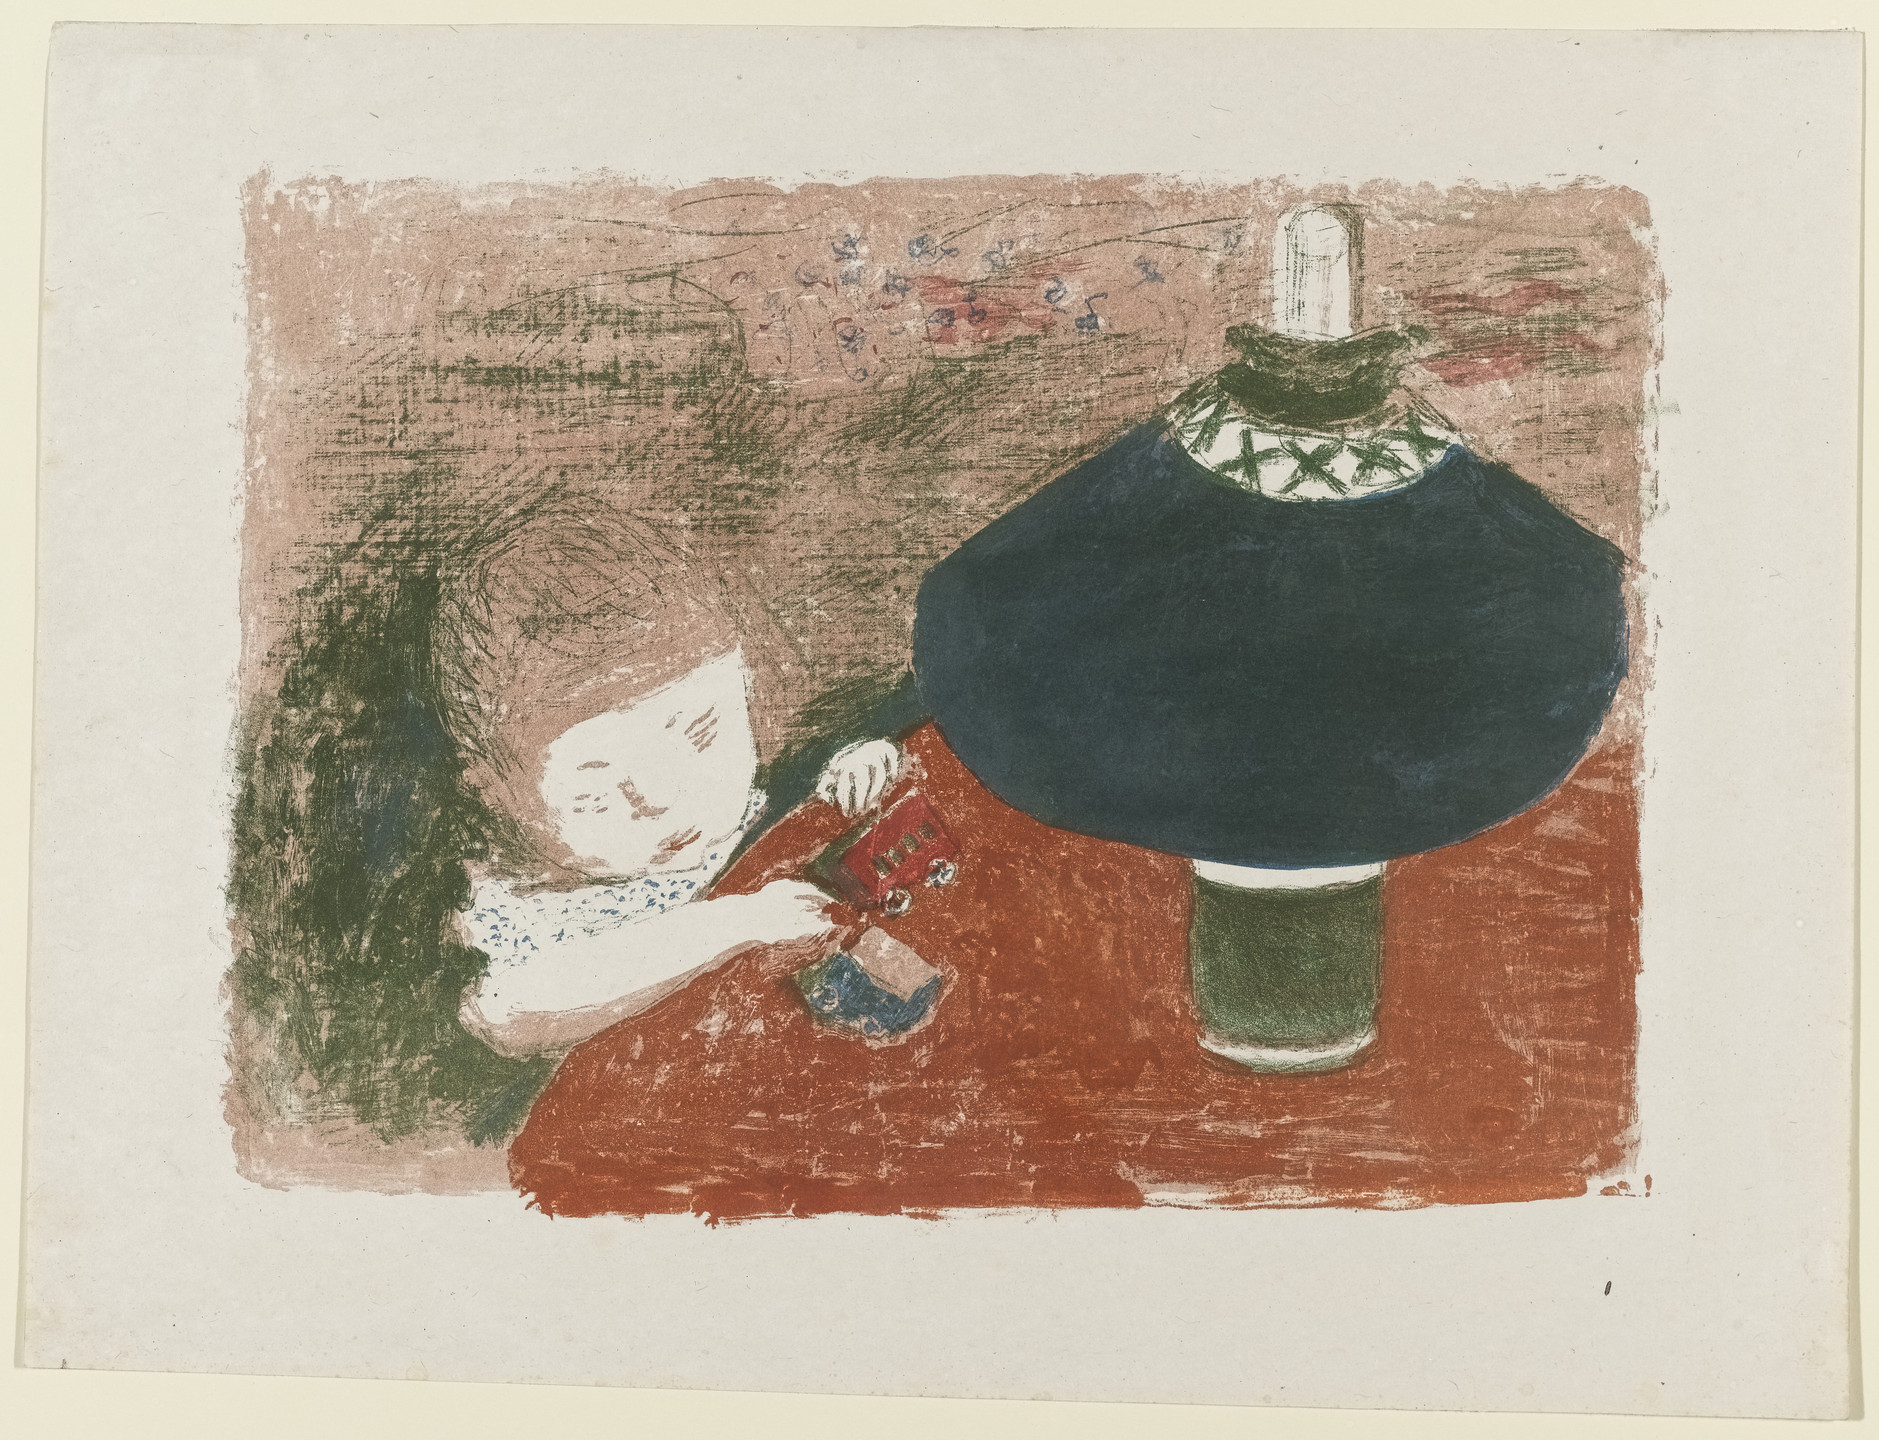 Pierre Bonnard. Child with Lamp (L'enfant à la lampe). c. 1897